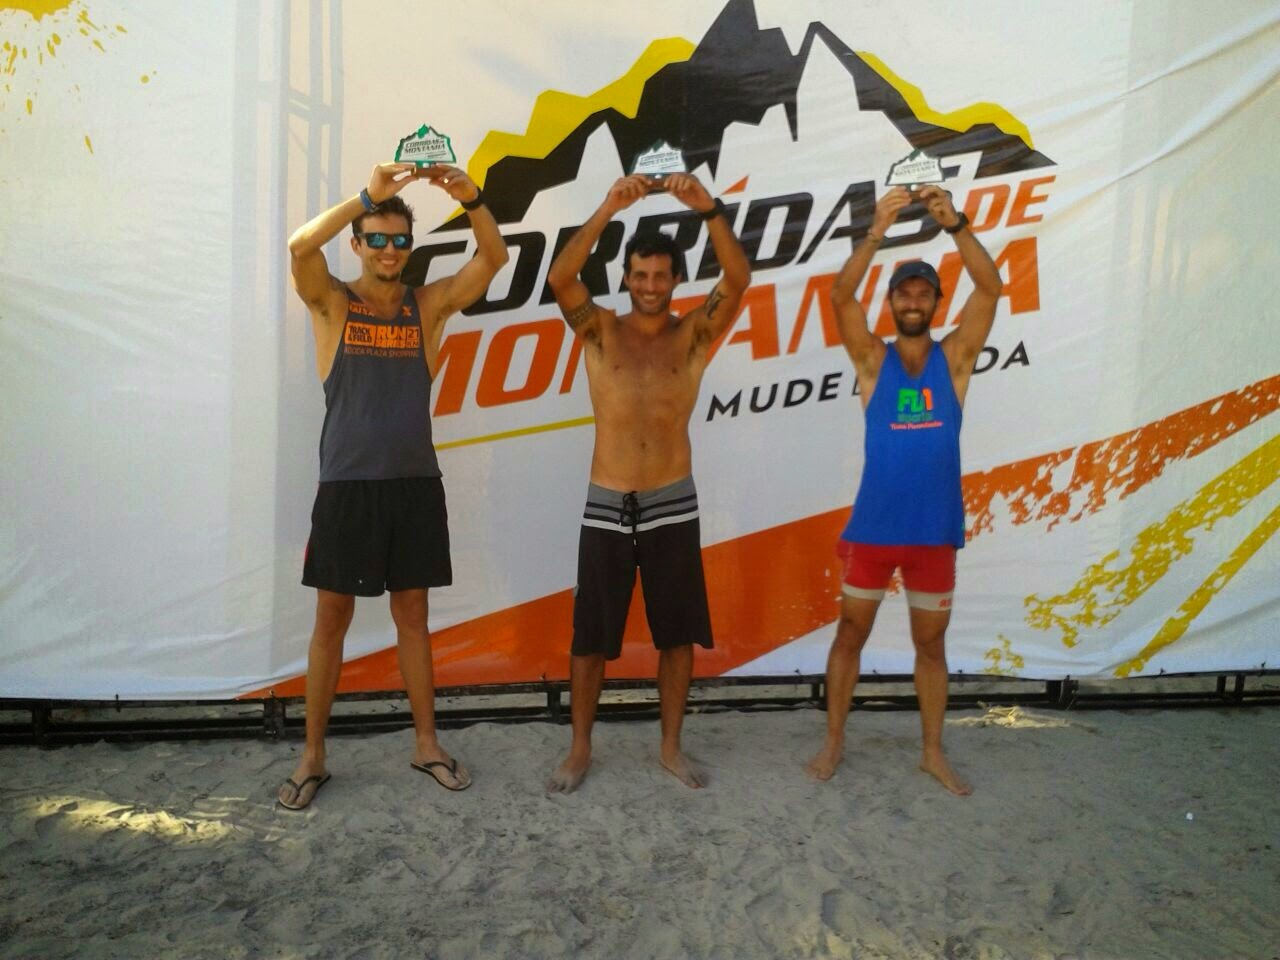 Podio do Endurance 50 (categoria 0 a 39 anos)